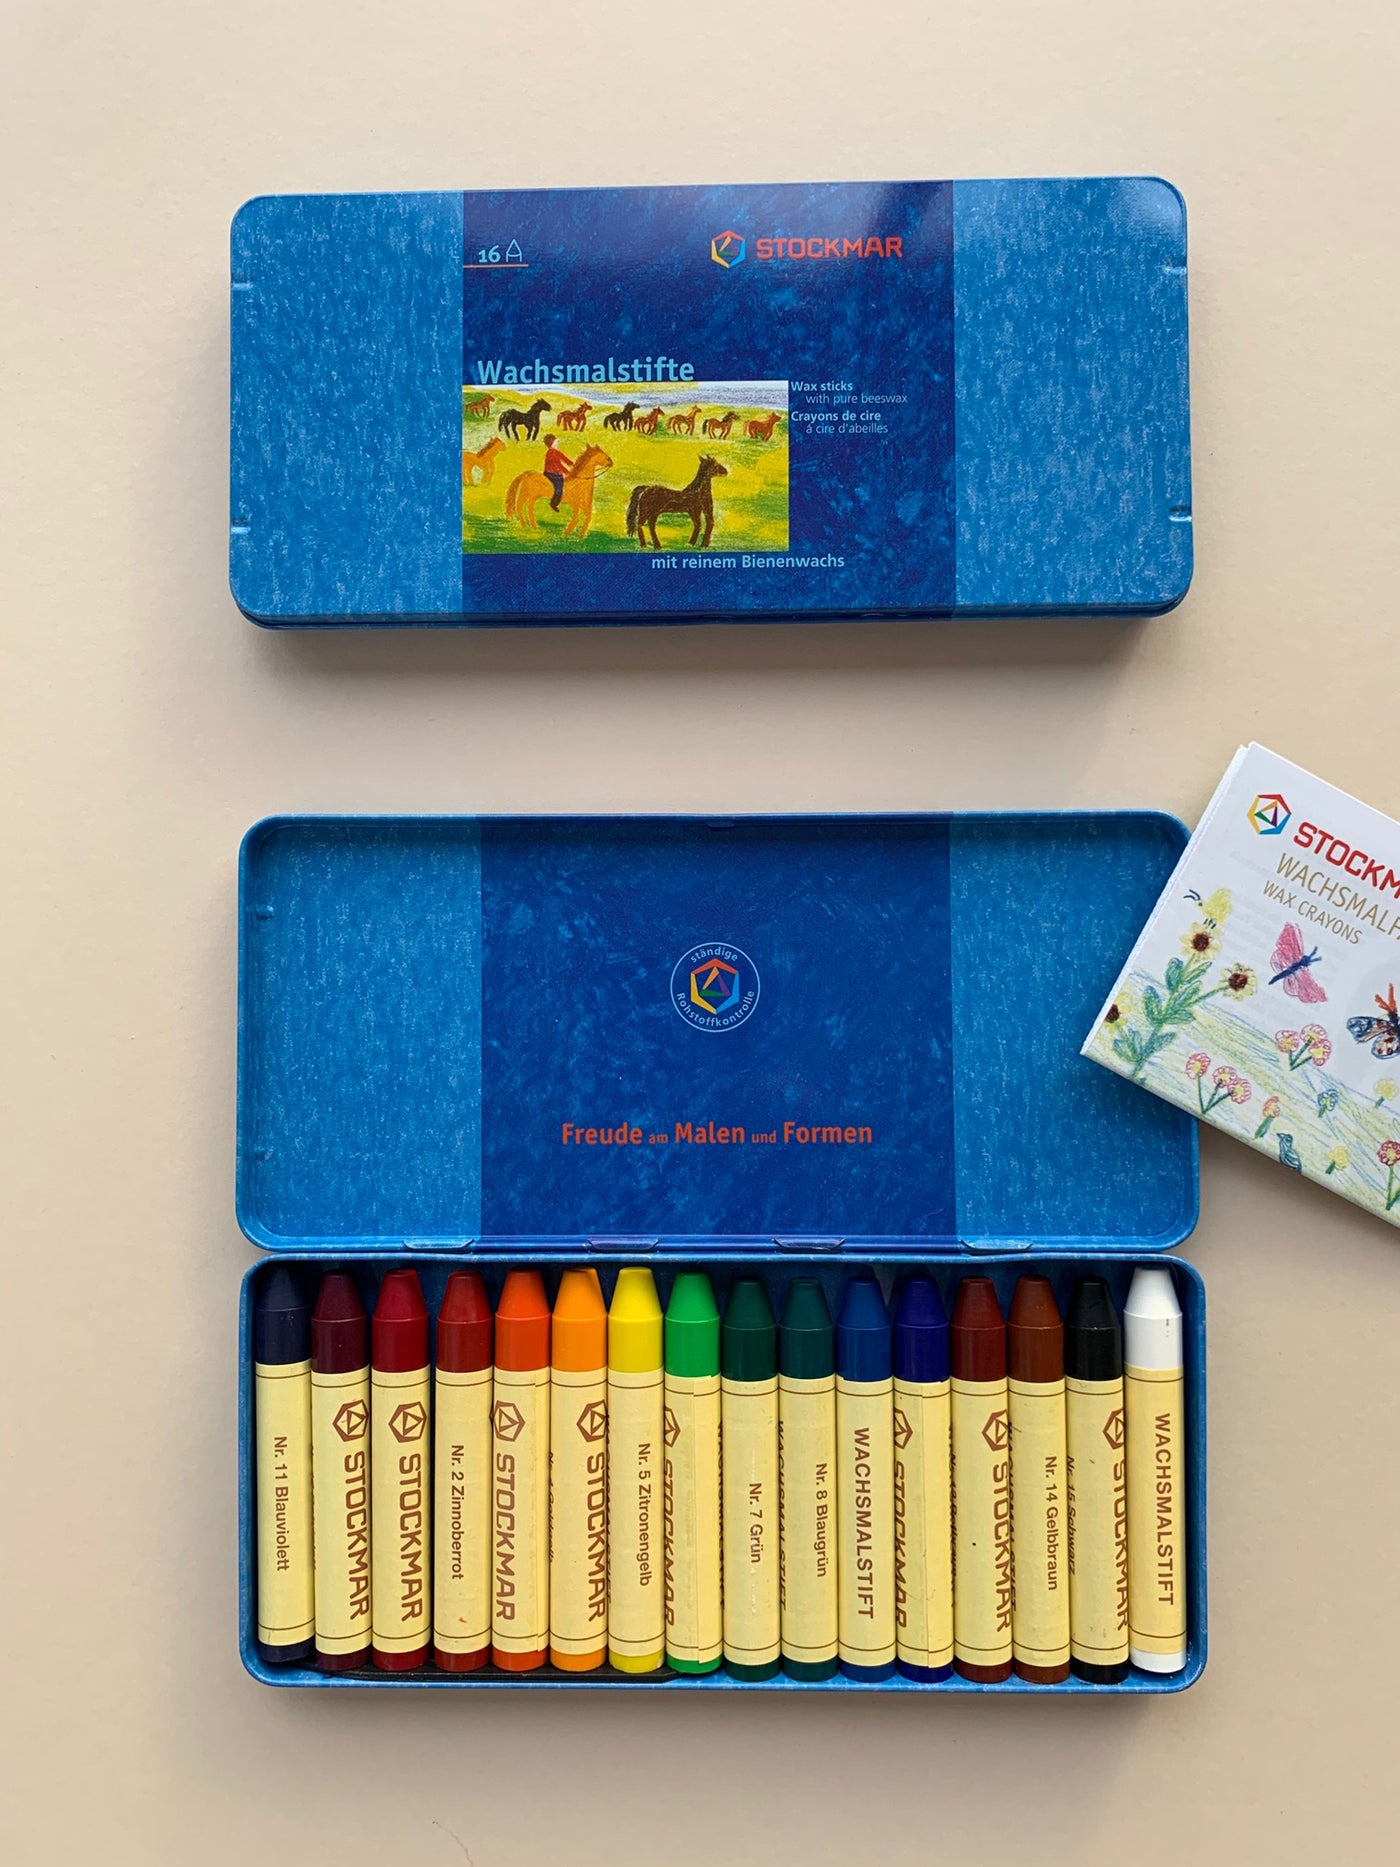 Stockmar Tin of 16 Beeswax Crayons